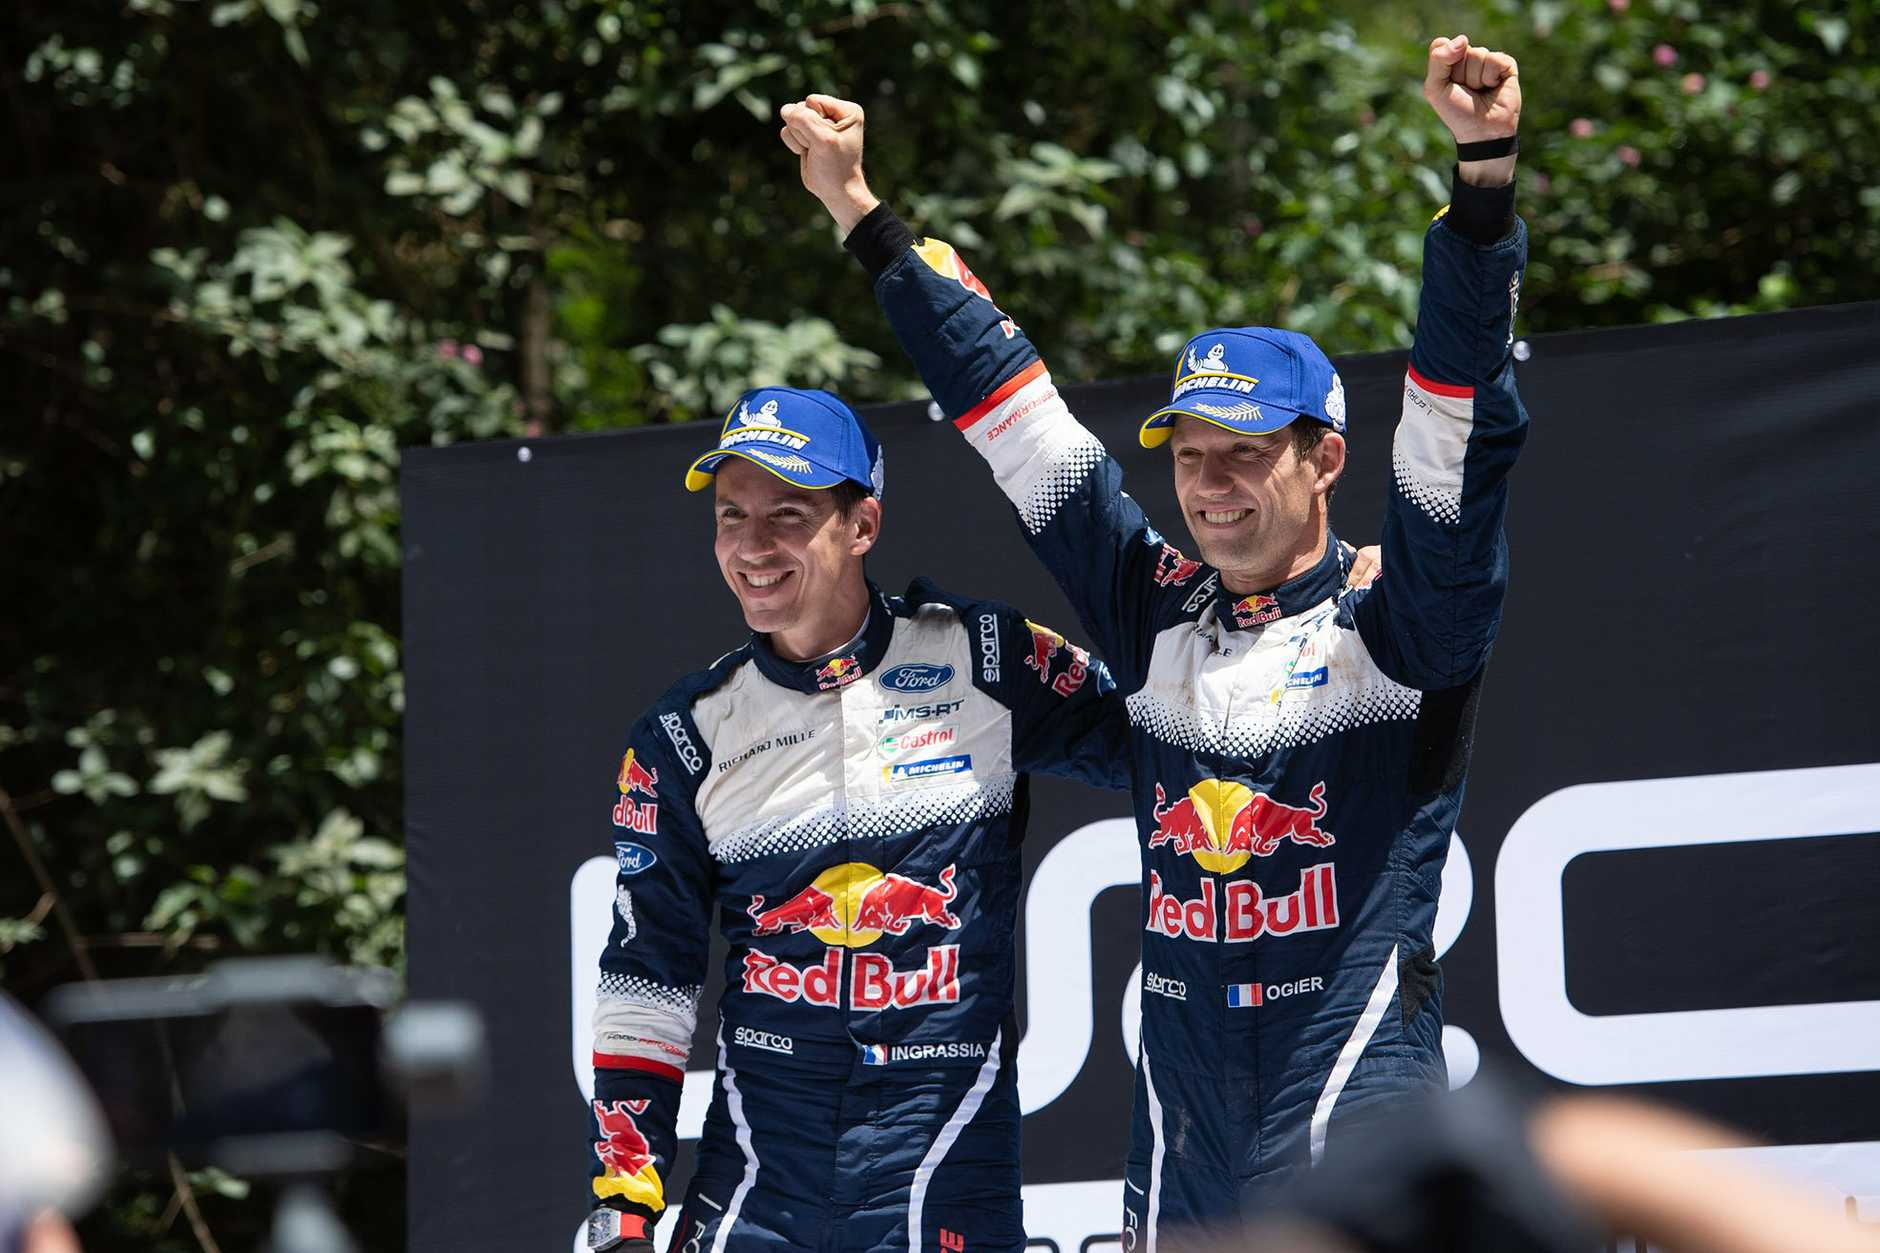 Six-time World Rally Champion Sébastien Ogier returns for what's expected to be his final time Down Under at Rally Australia.